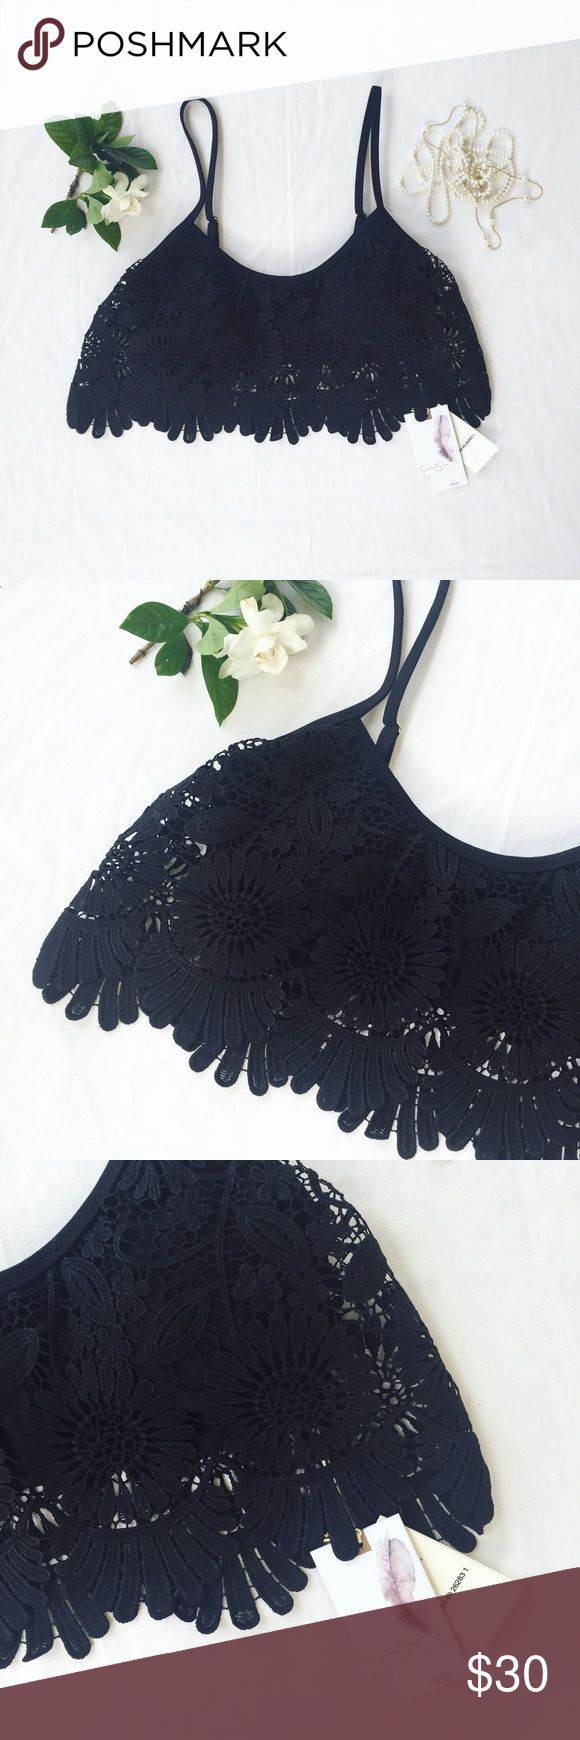 🆕 Jessica Simpson | Lace Sunflower Bikini Top | S Gorgeous Jessica Simpson bikini top - new with tags. Originally $70.00. Simple black top with decorative lace overlay. Adjustable spaghetti straps. Size small. Also available in blue!! Ready to ship next business day! Jessica Simpson Swim Bikinis